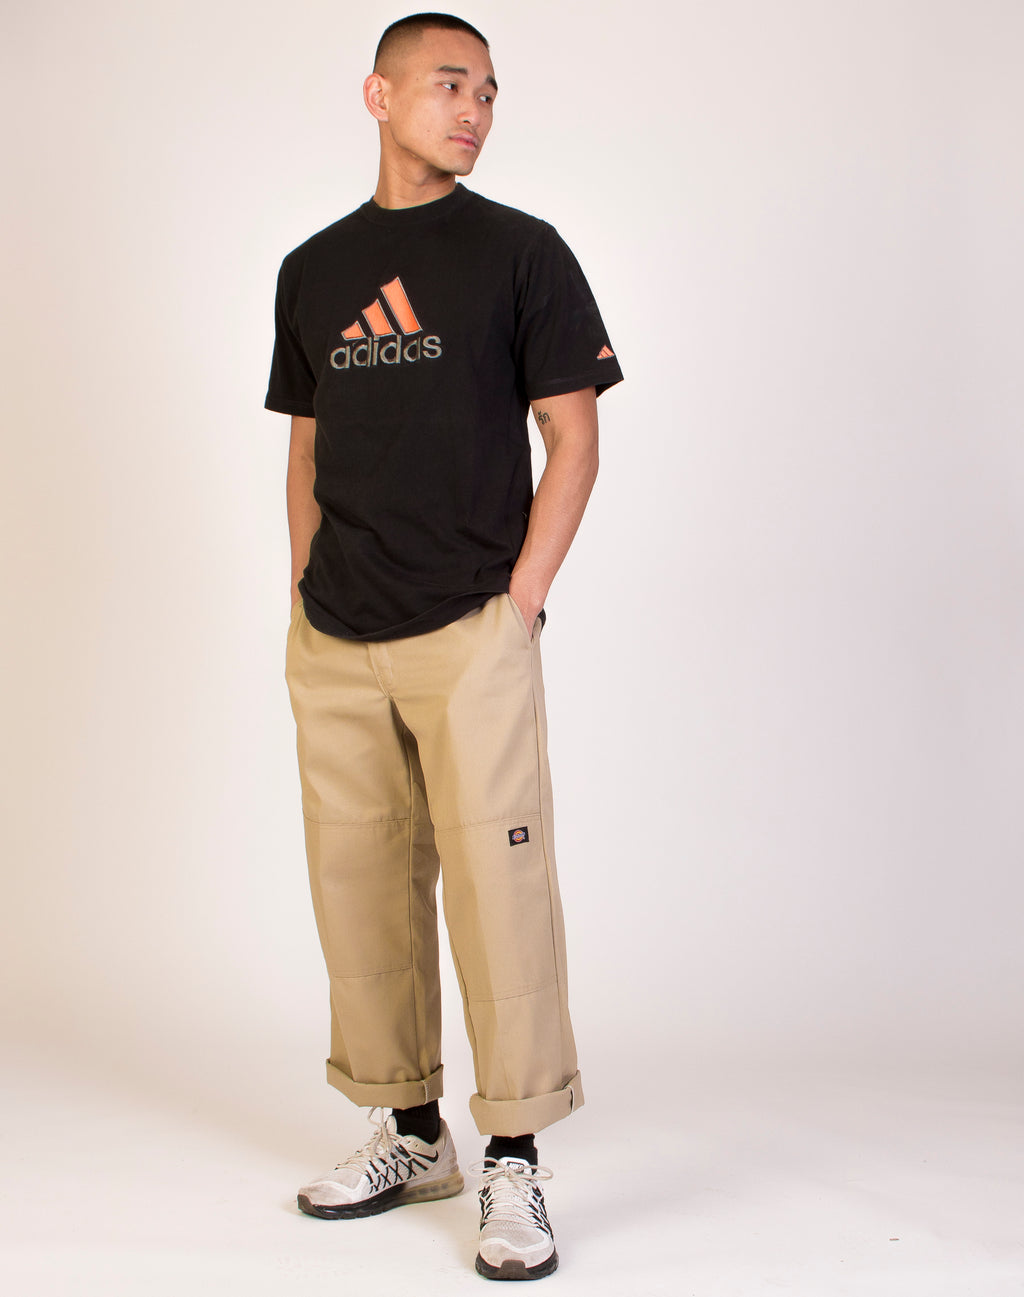 ADIDAS BLACK AND ORANGE LOGO TEE